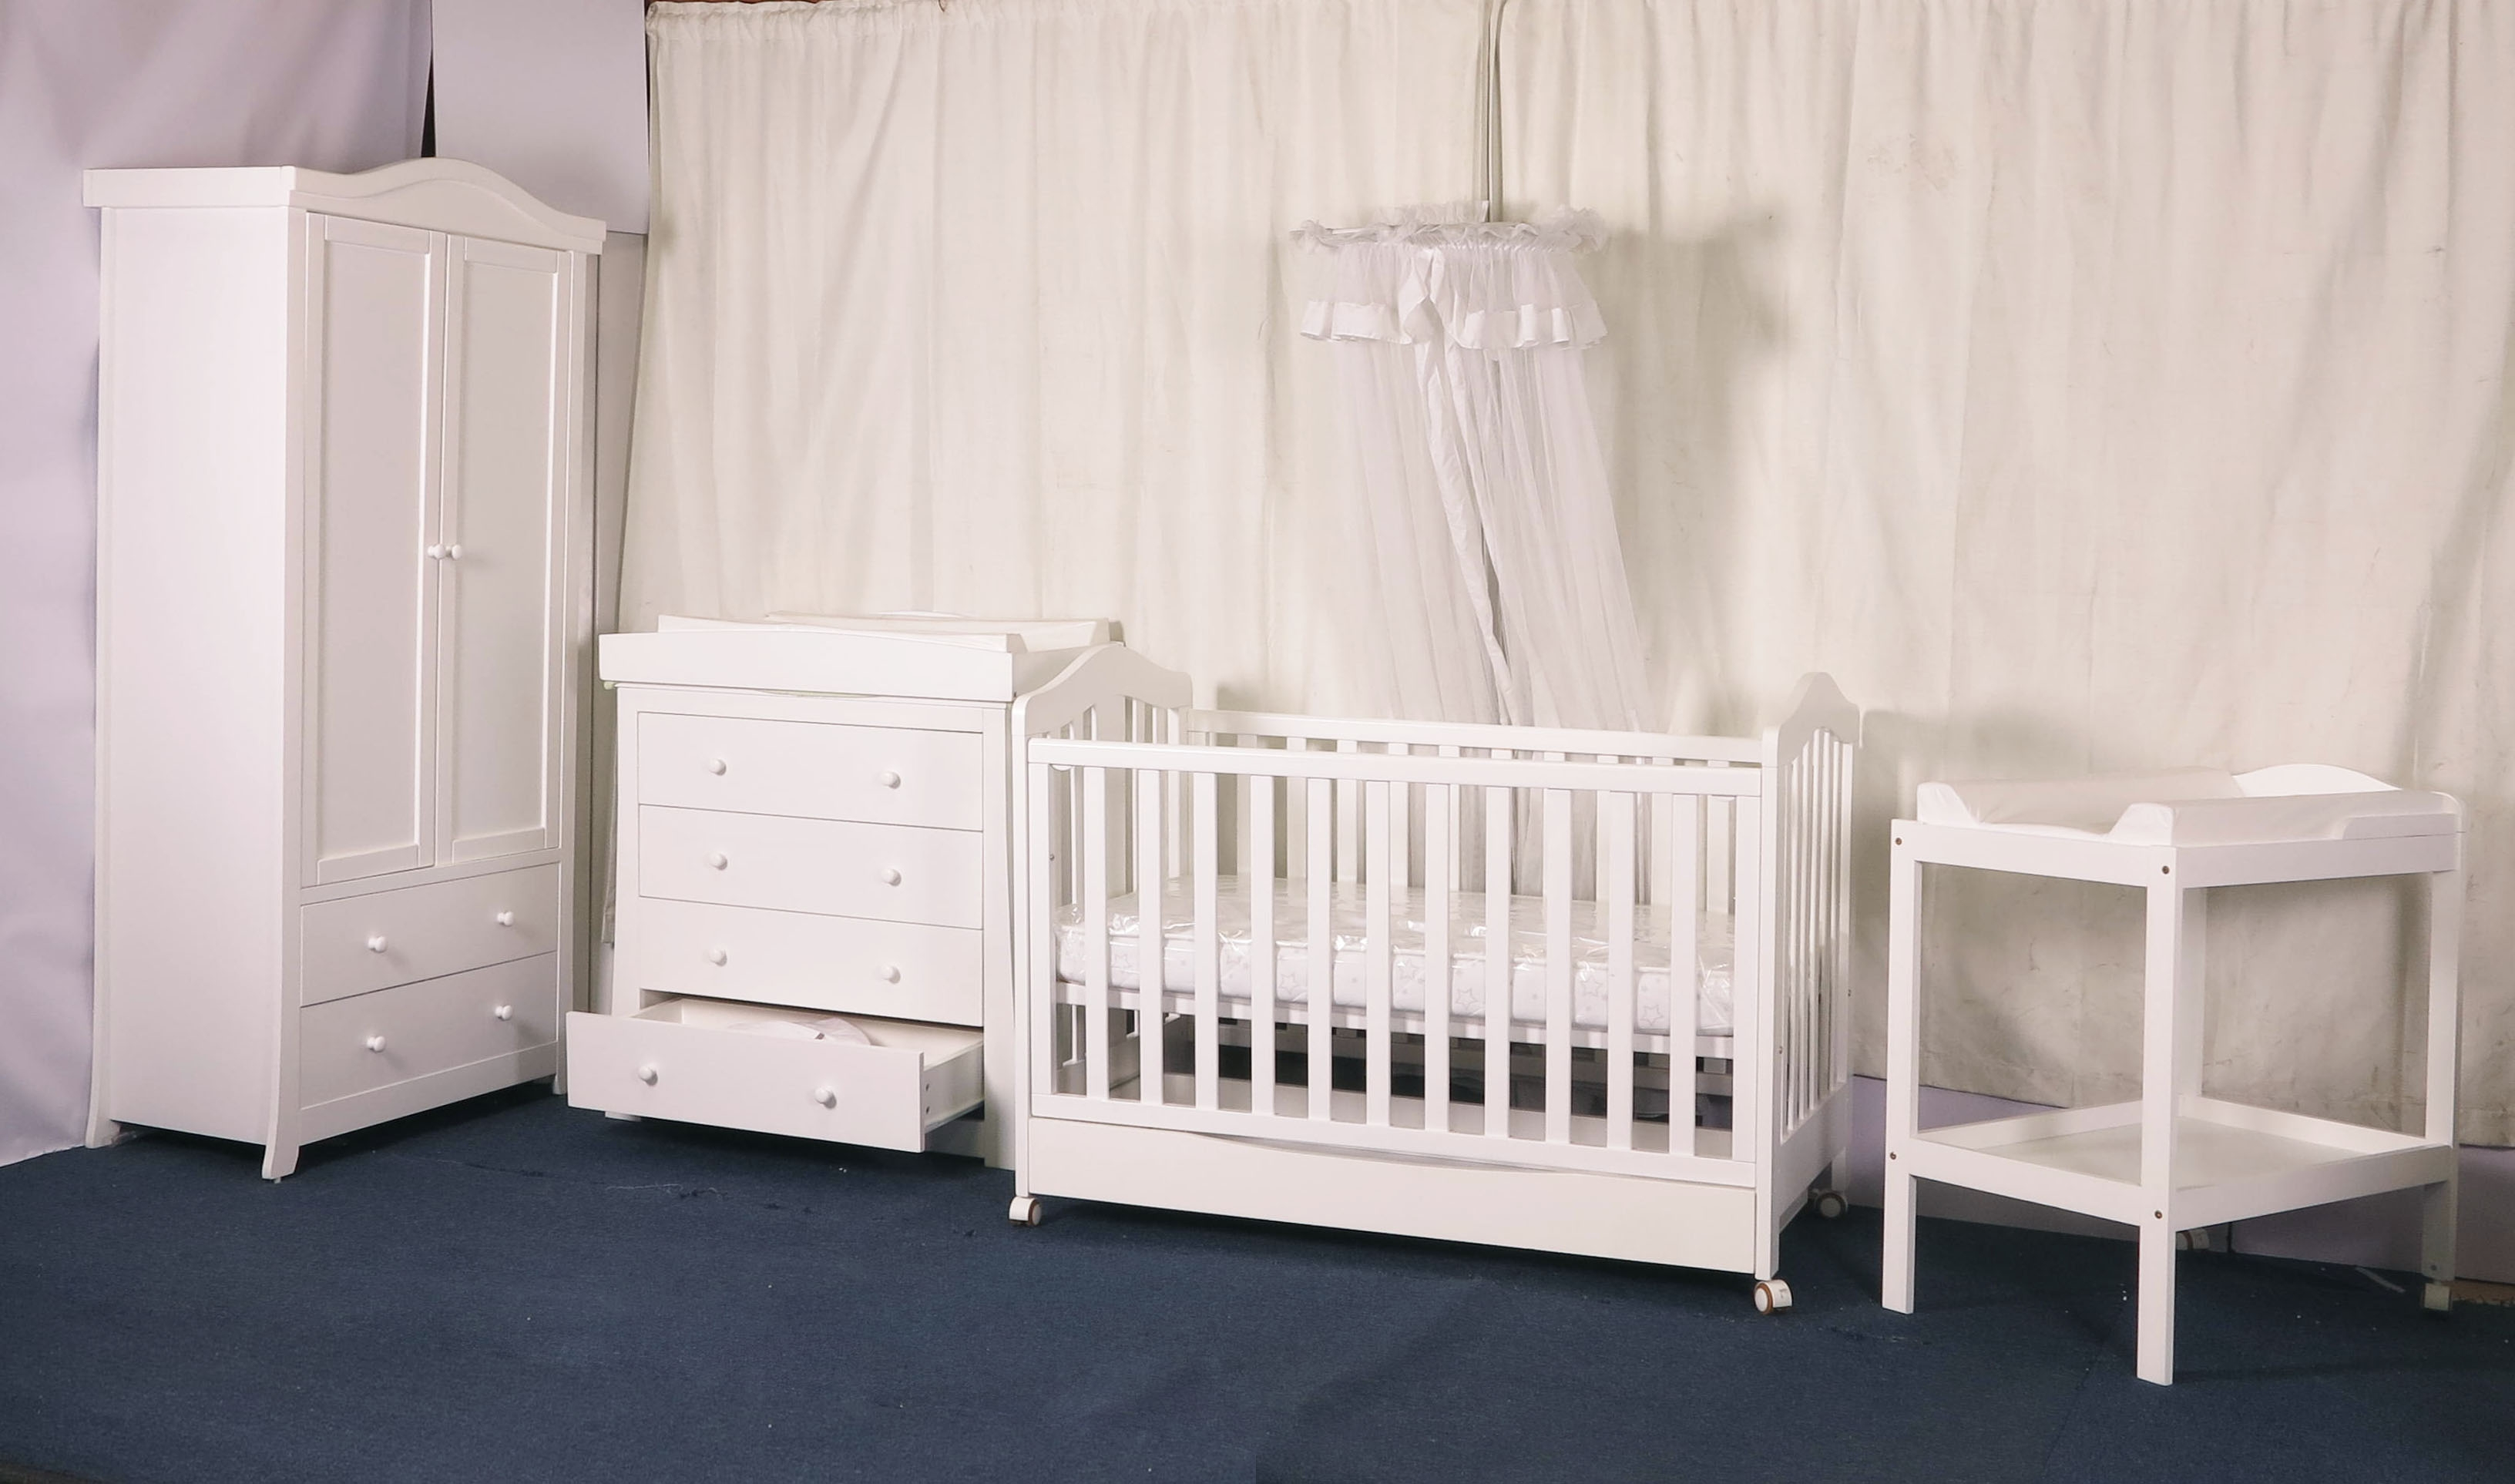 Cot&Baby Furniture